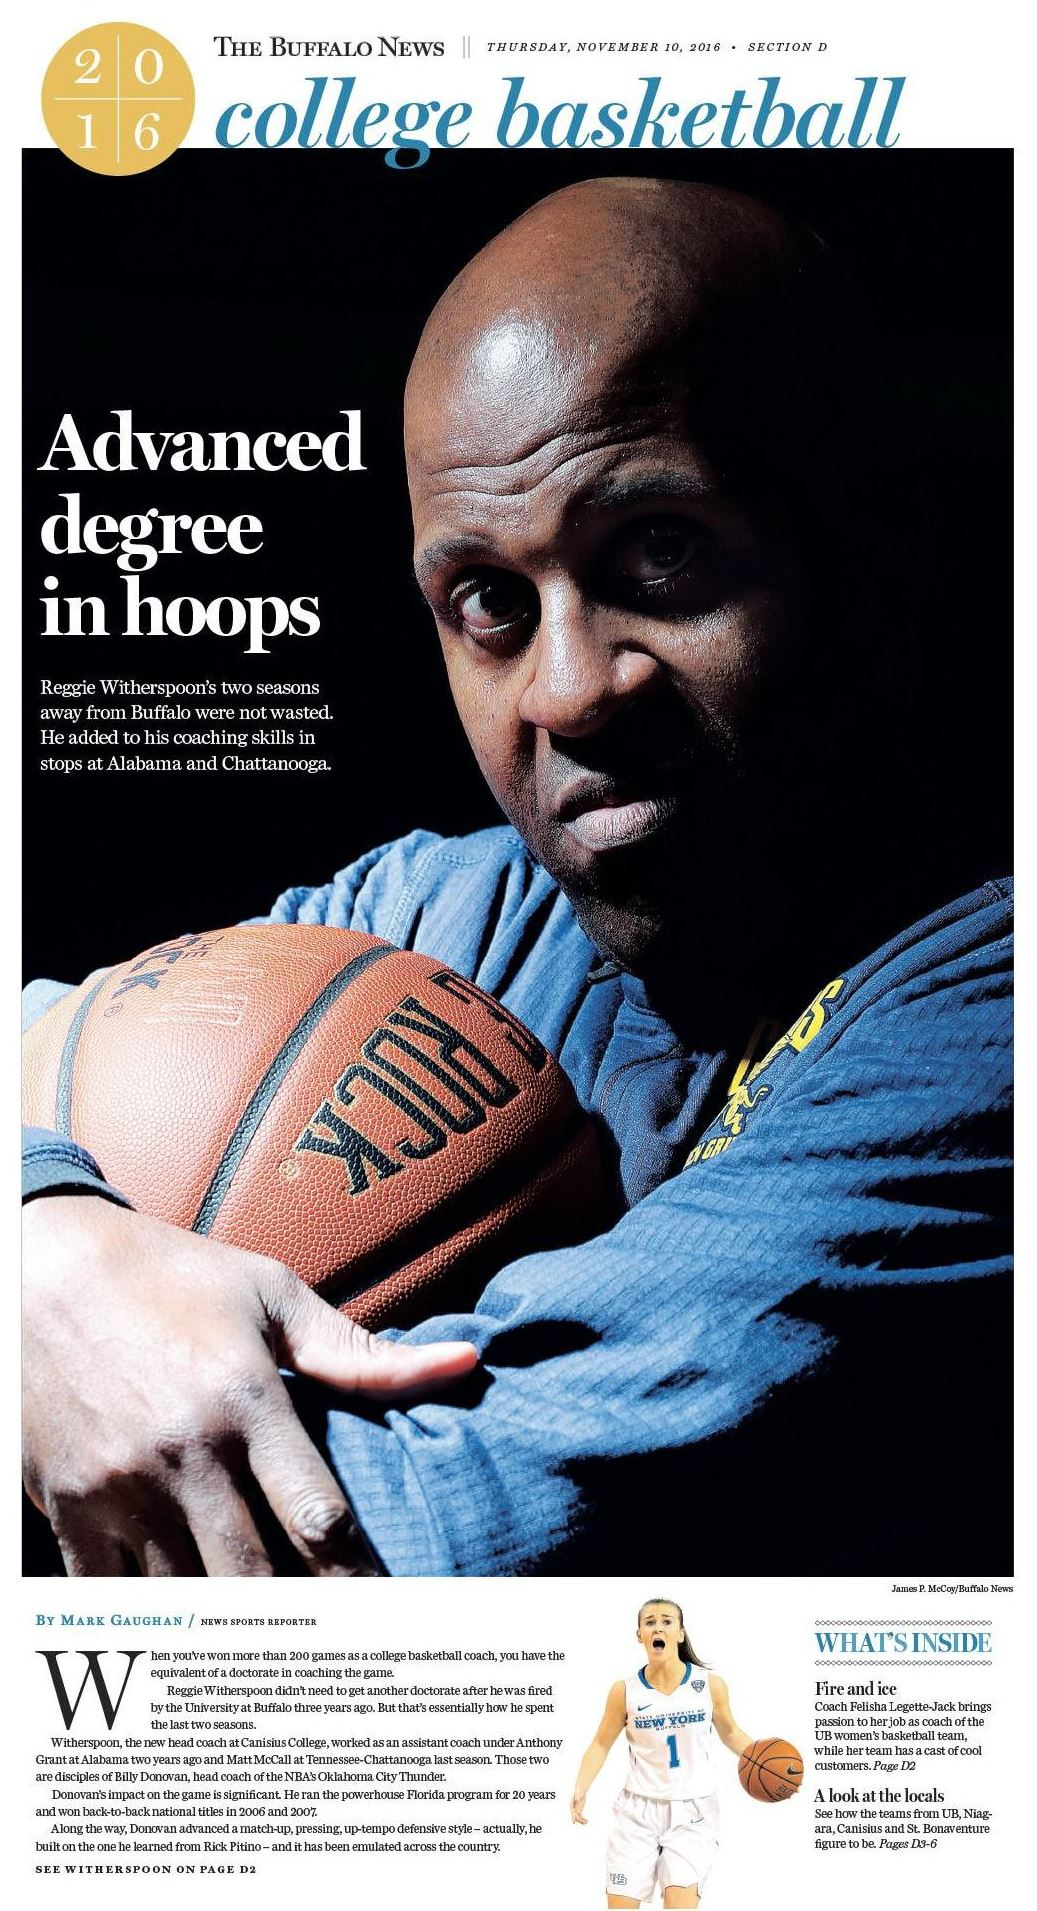 Our special section cover. Photo by James P. McCoy; design by Jason Baum.